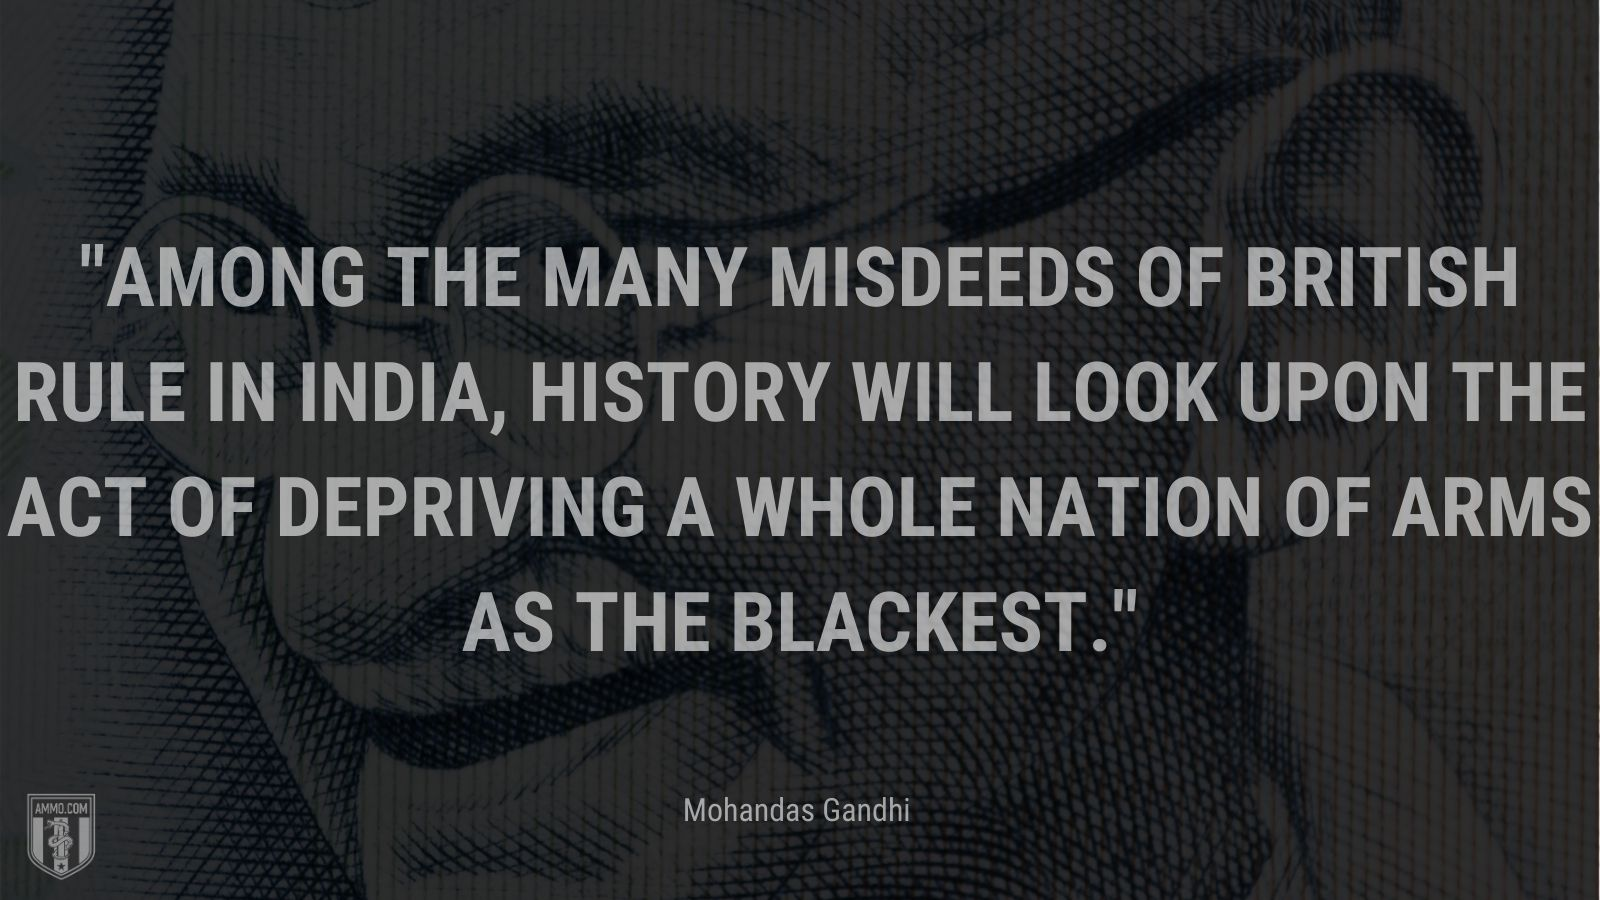 """""""Among the many misdeeds of British rule in India, history will look upon the act of depriving a whole nation of arms as the blackest."""" - Mohandas Gandhi"""